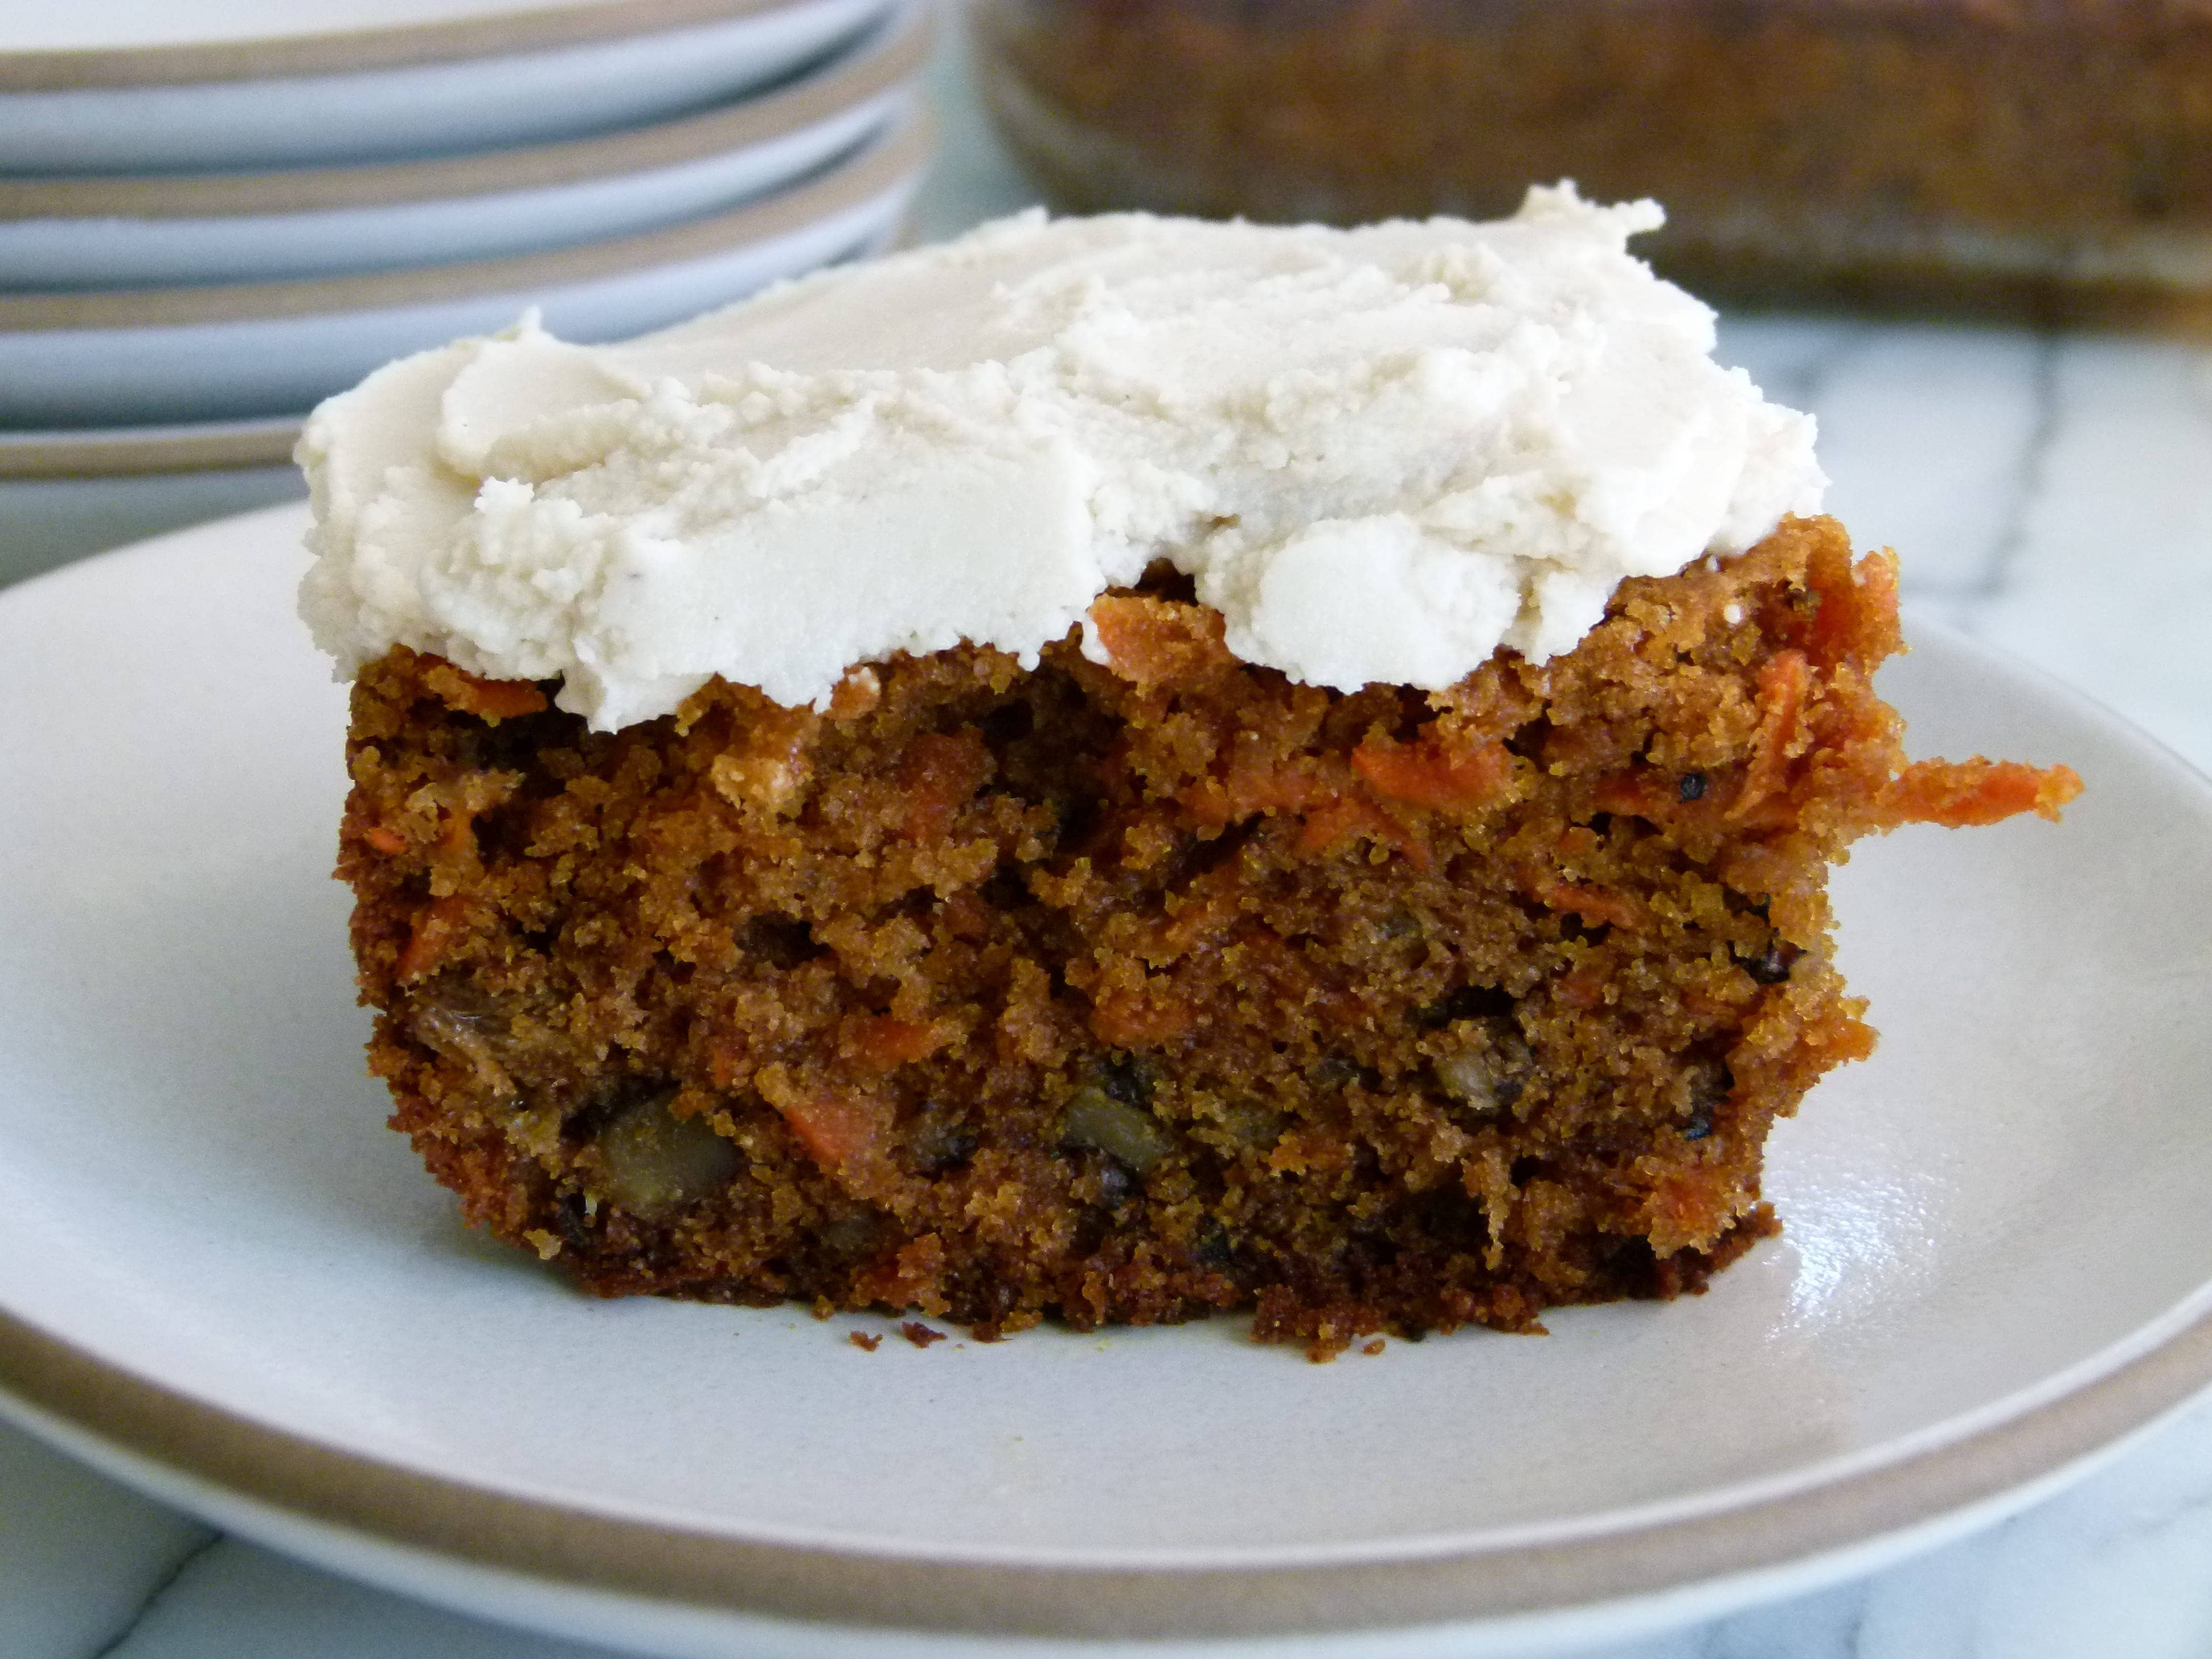 Carrot Cake Recipe No Icing: PALEO CARROT CAKE THAT WILL FOOL YOUR NON-PALEO FRIENDS